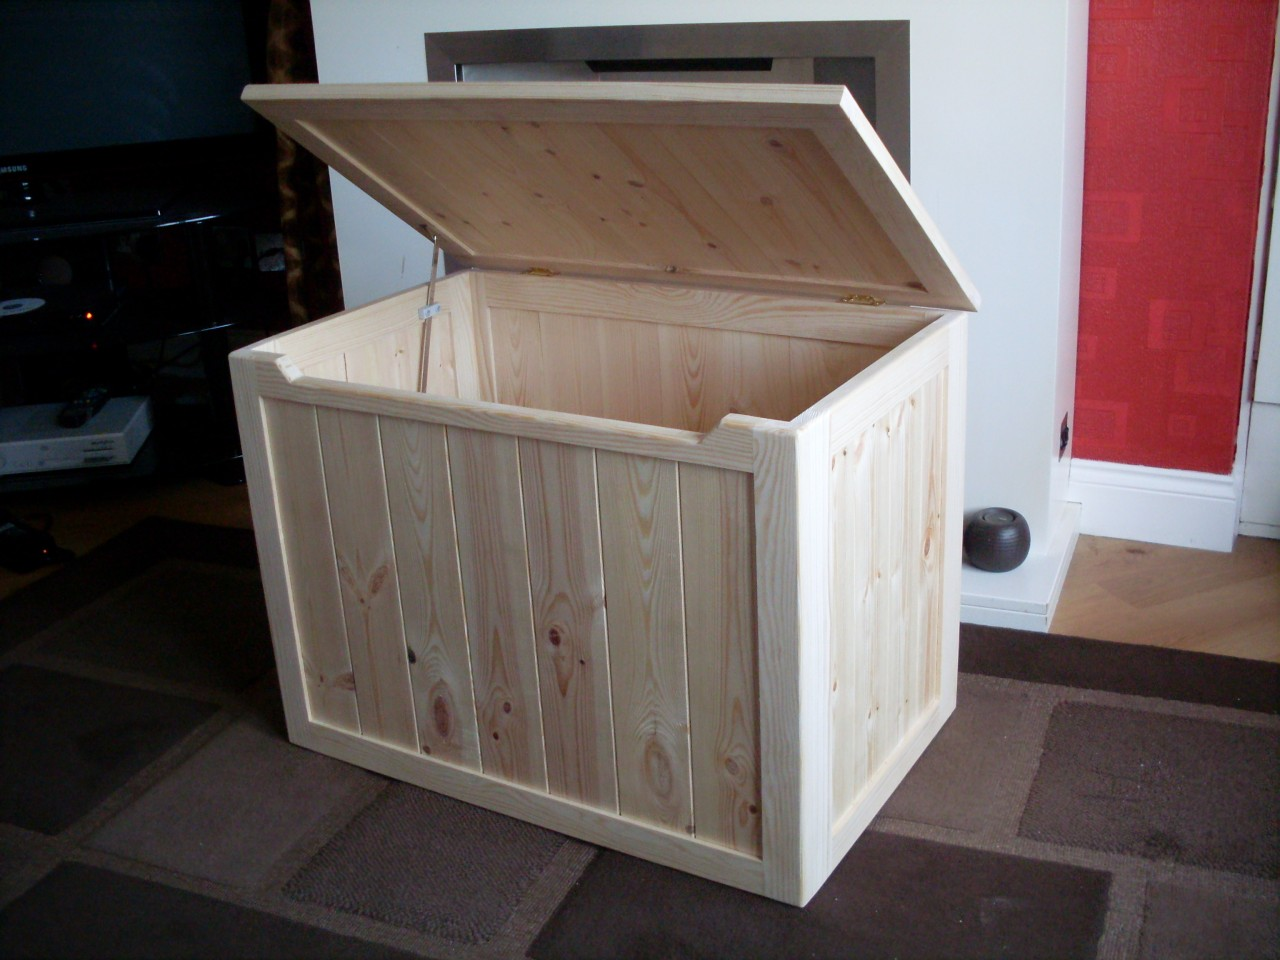 details about beautiful hand crafted pine wooden toy box, blanket box, chest